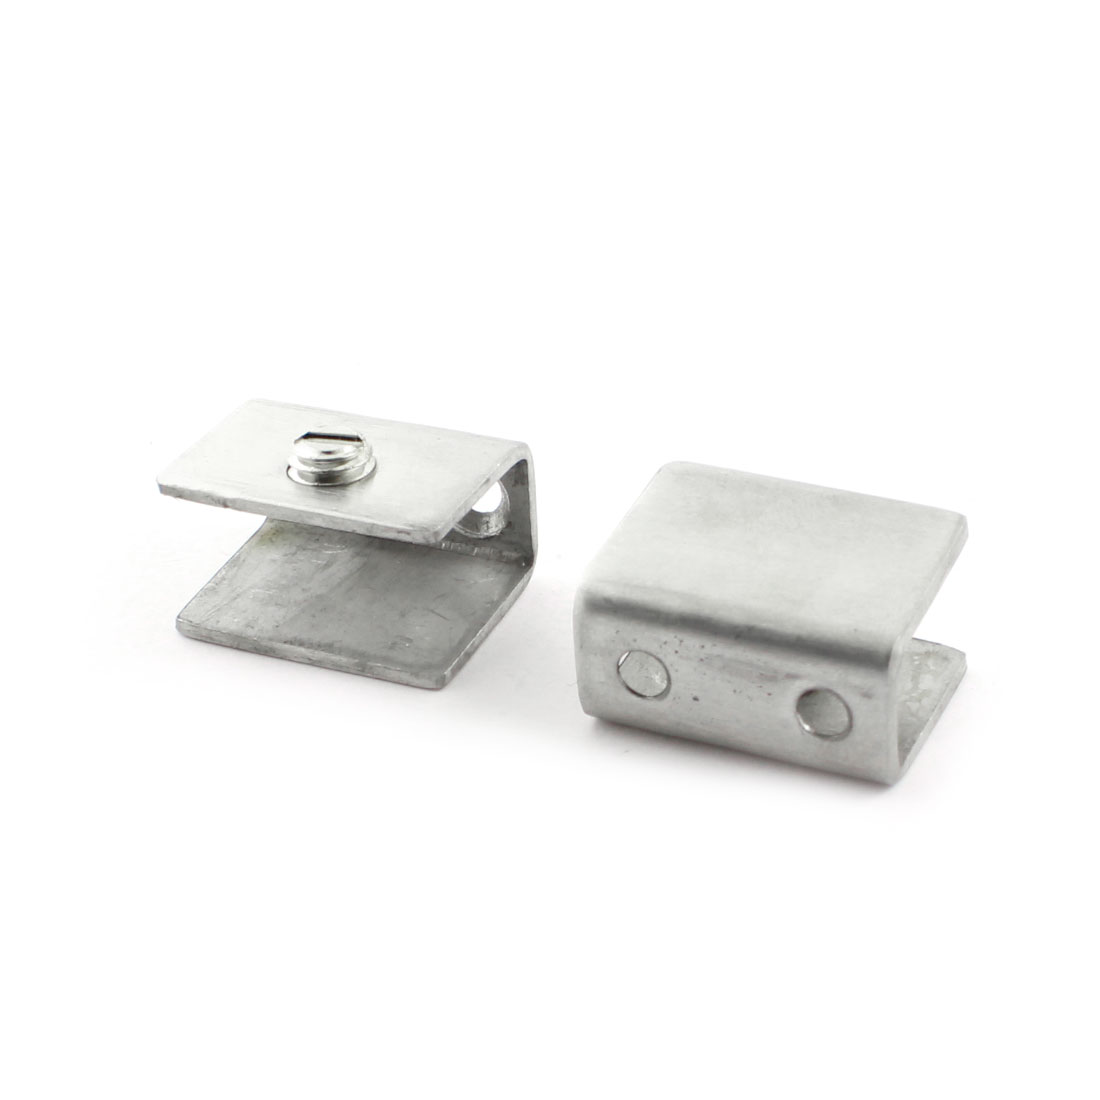 2 Pcs Stainless Steel 12mm Thickness Glass Shelf Clip Clamp